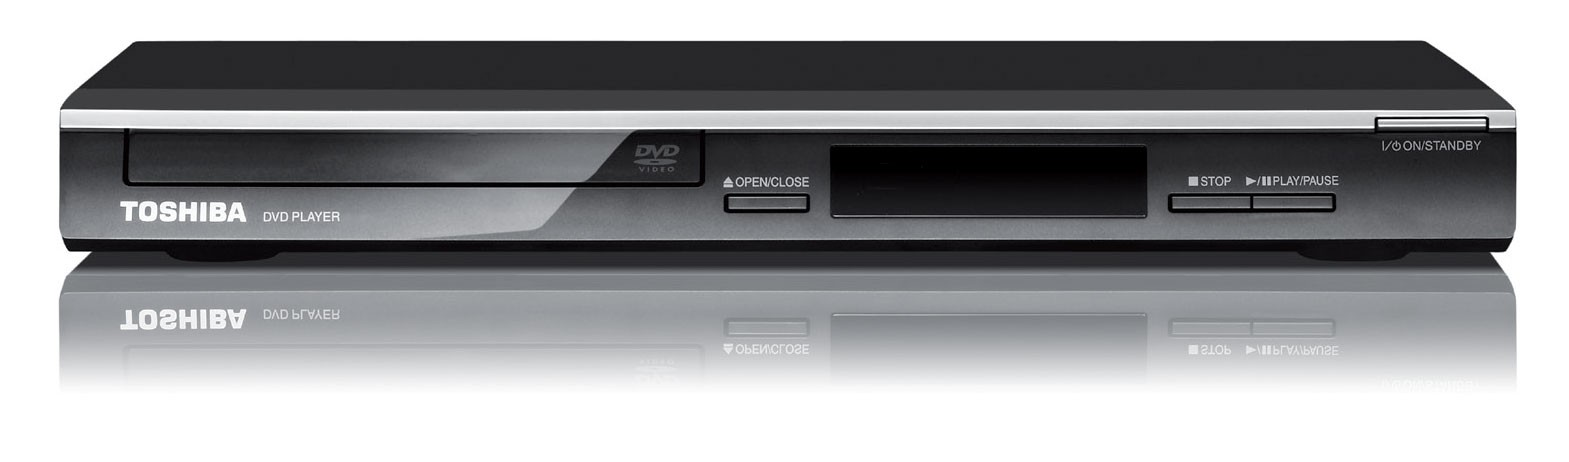 Toshiba sd 3300 region free dvd player code free zone free toshiba sd 3300 region free dvd player publicscrutiny Image collections